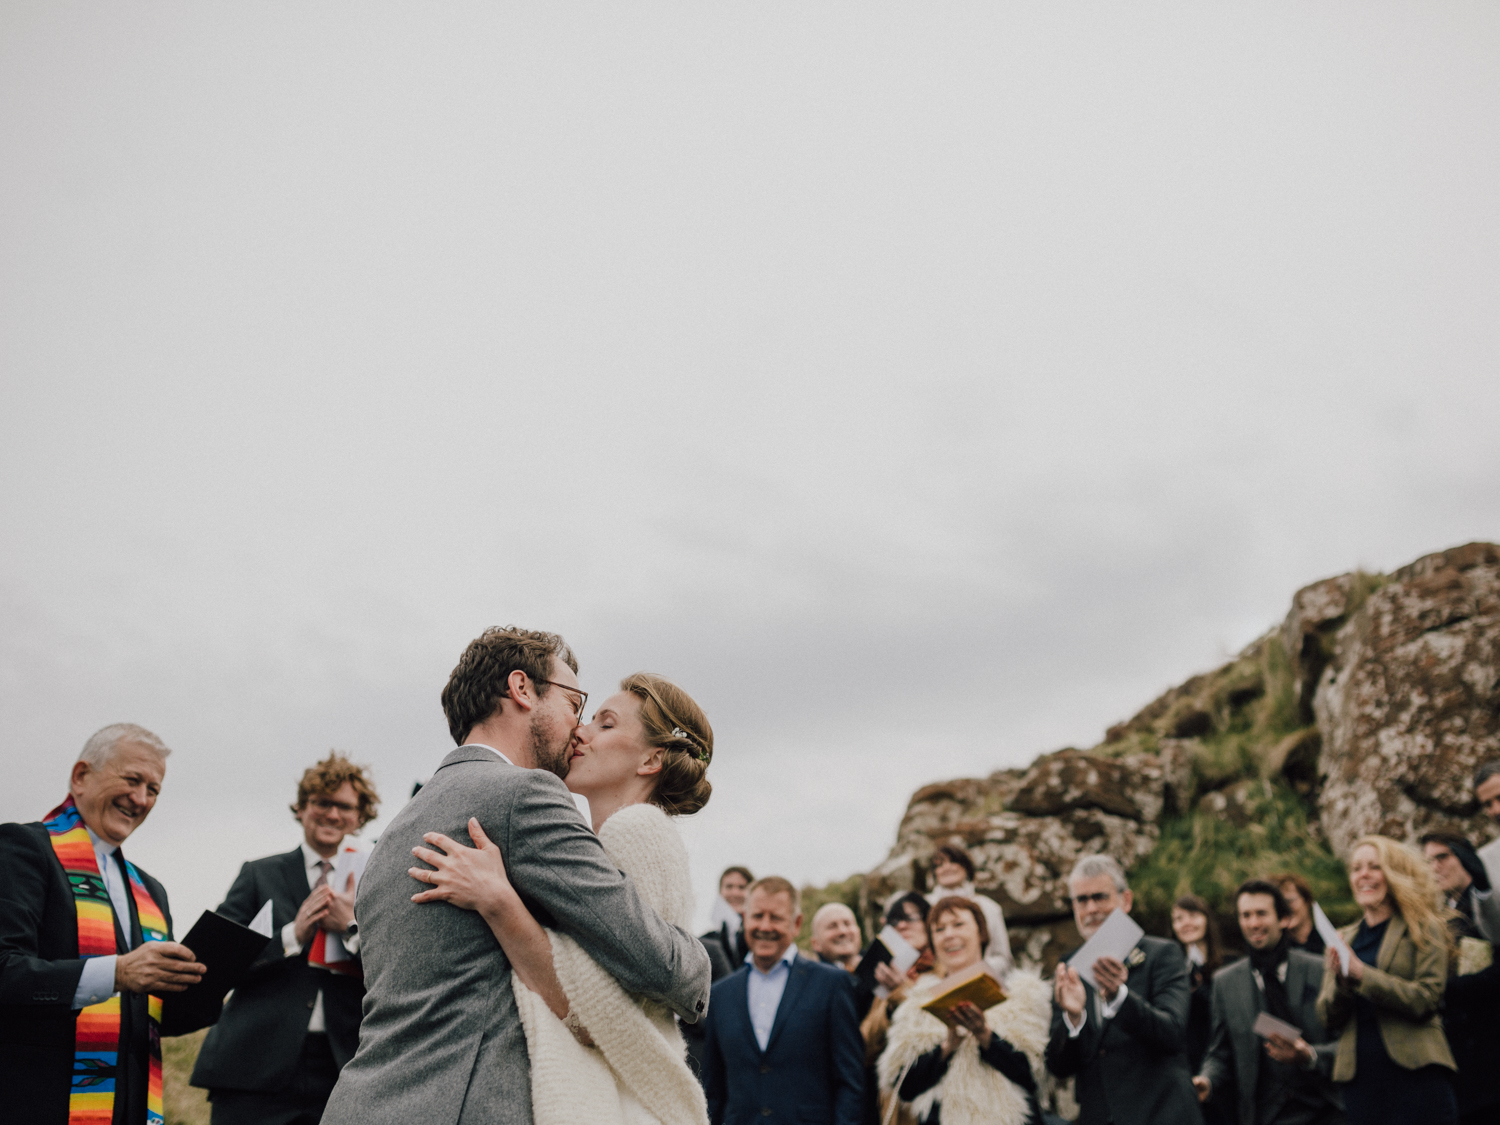 capyture-wedding-photographer-destination-nature-intimate-wedding-isle-of-skye-scotland-300